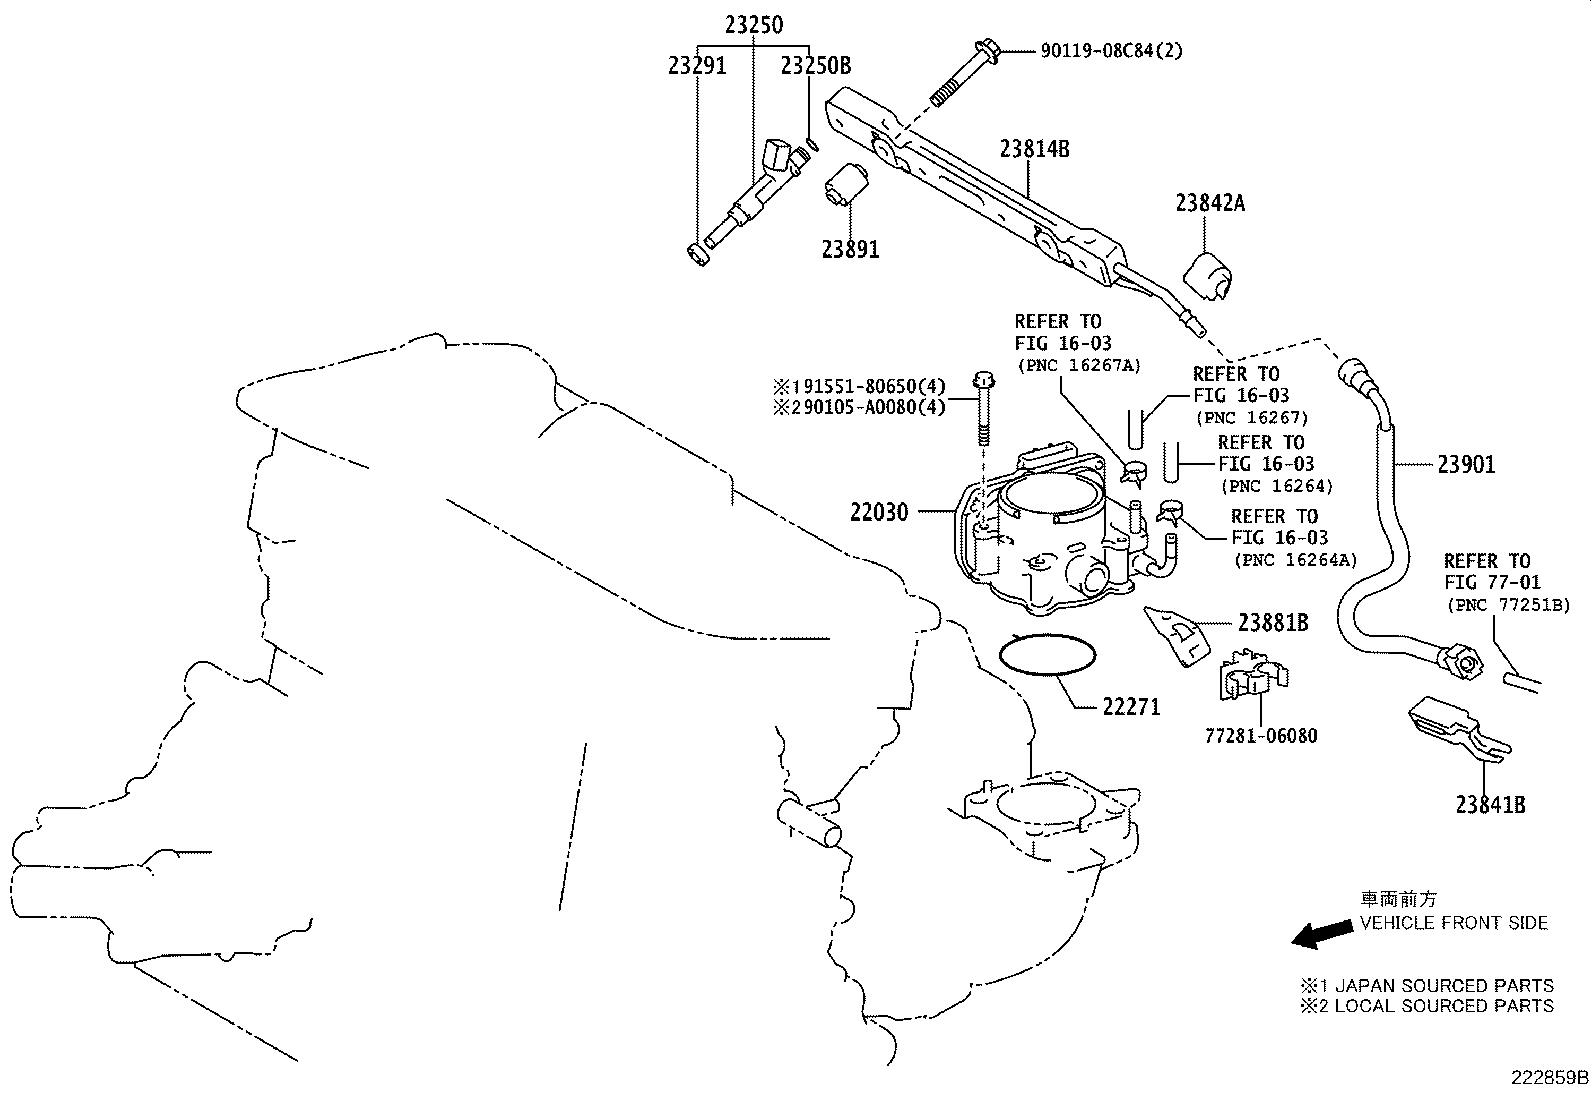 Toyota Avalon Tube Sub Assembly Fuel System Injection